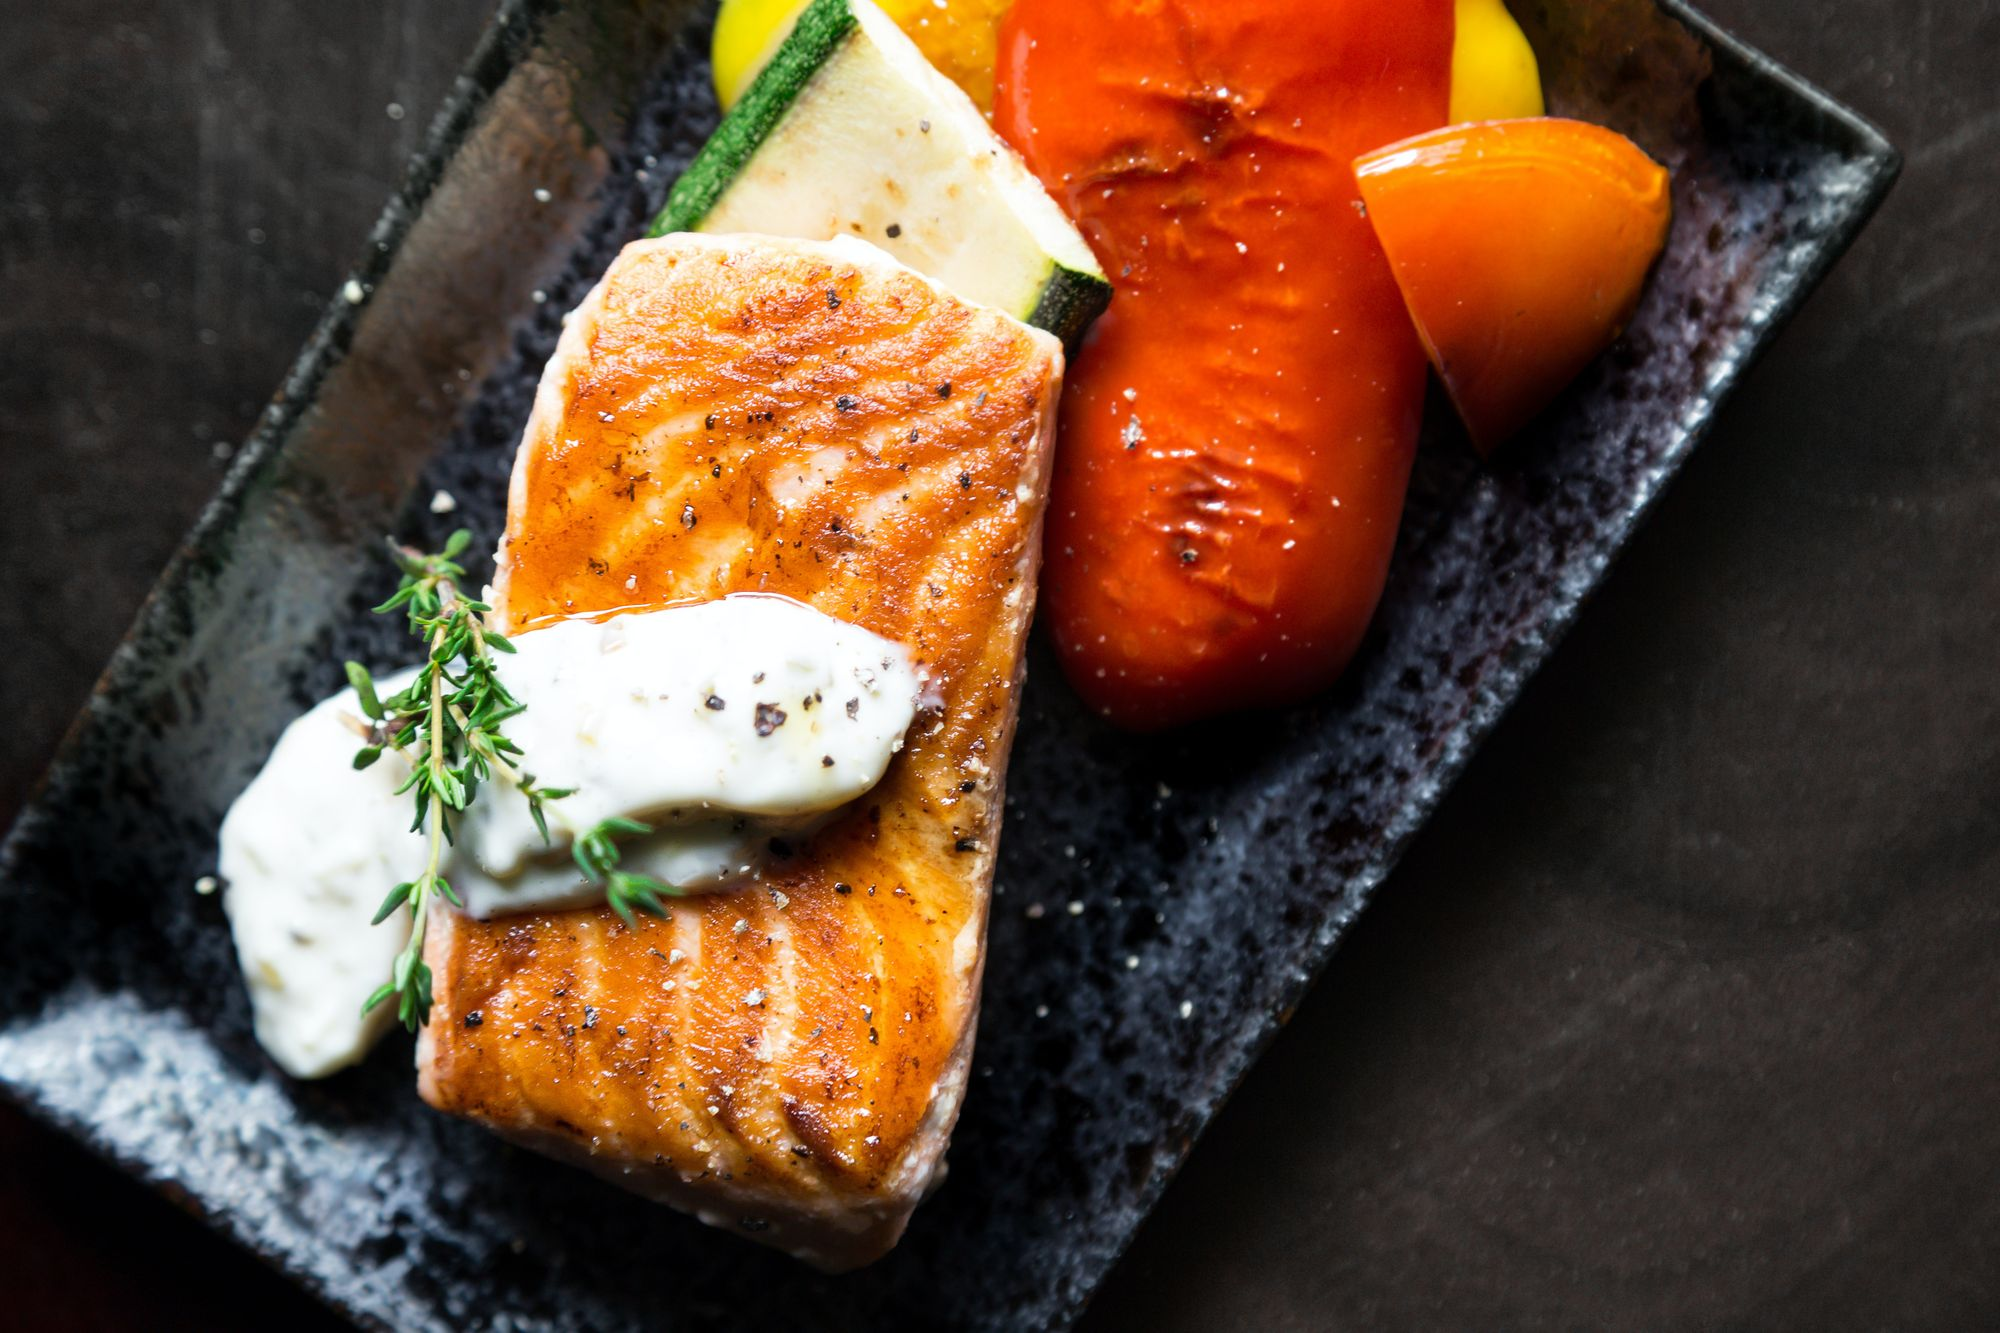 Salmon with vegetables are the best foods to eat before a test